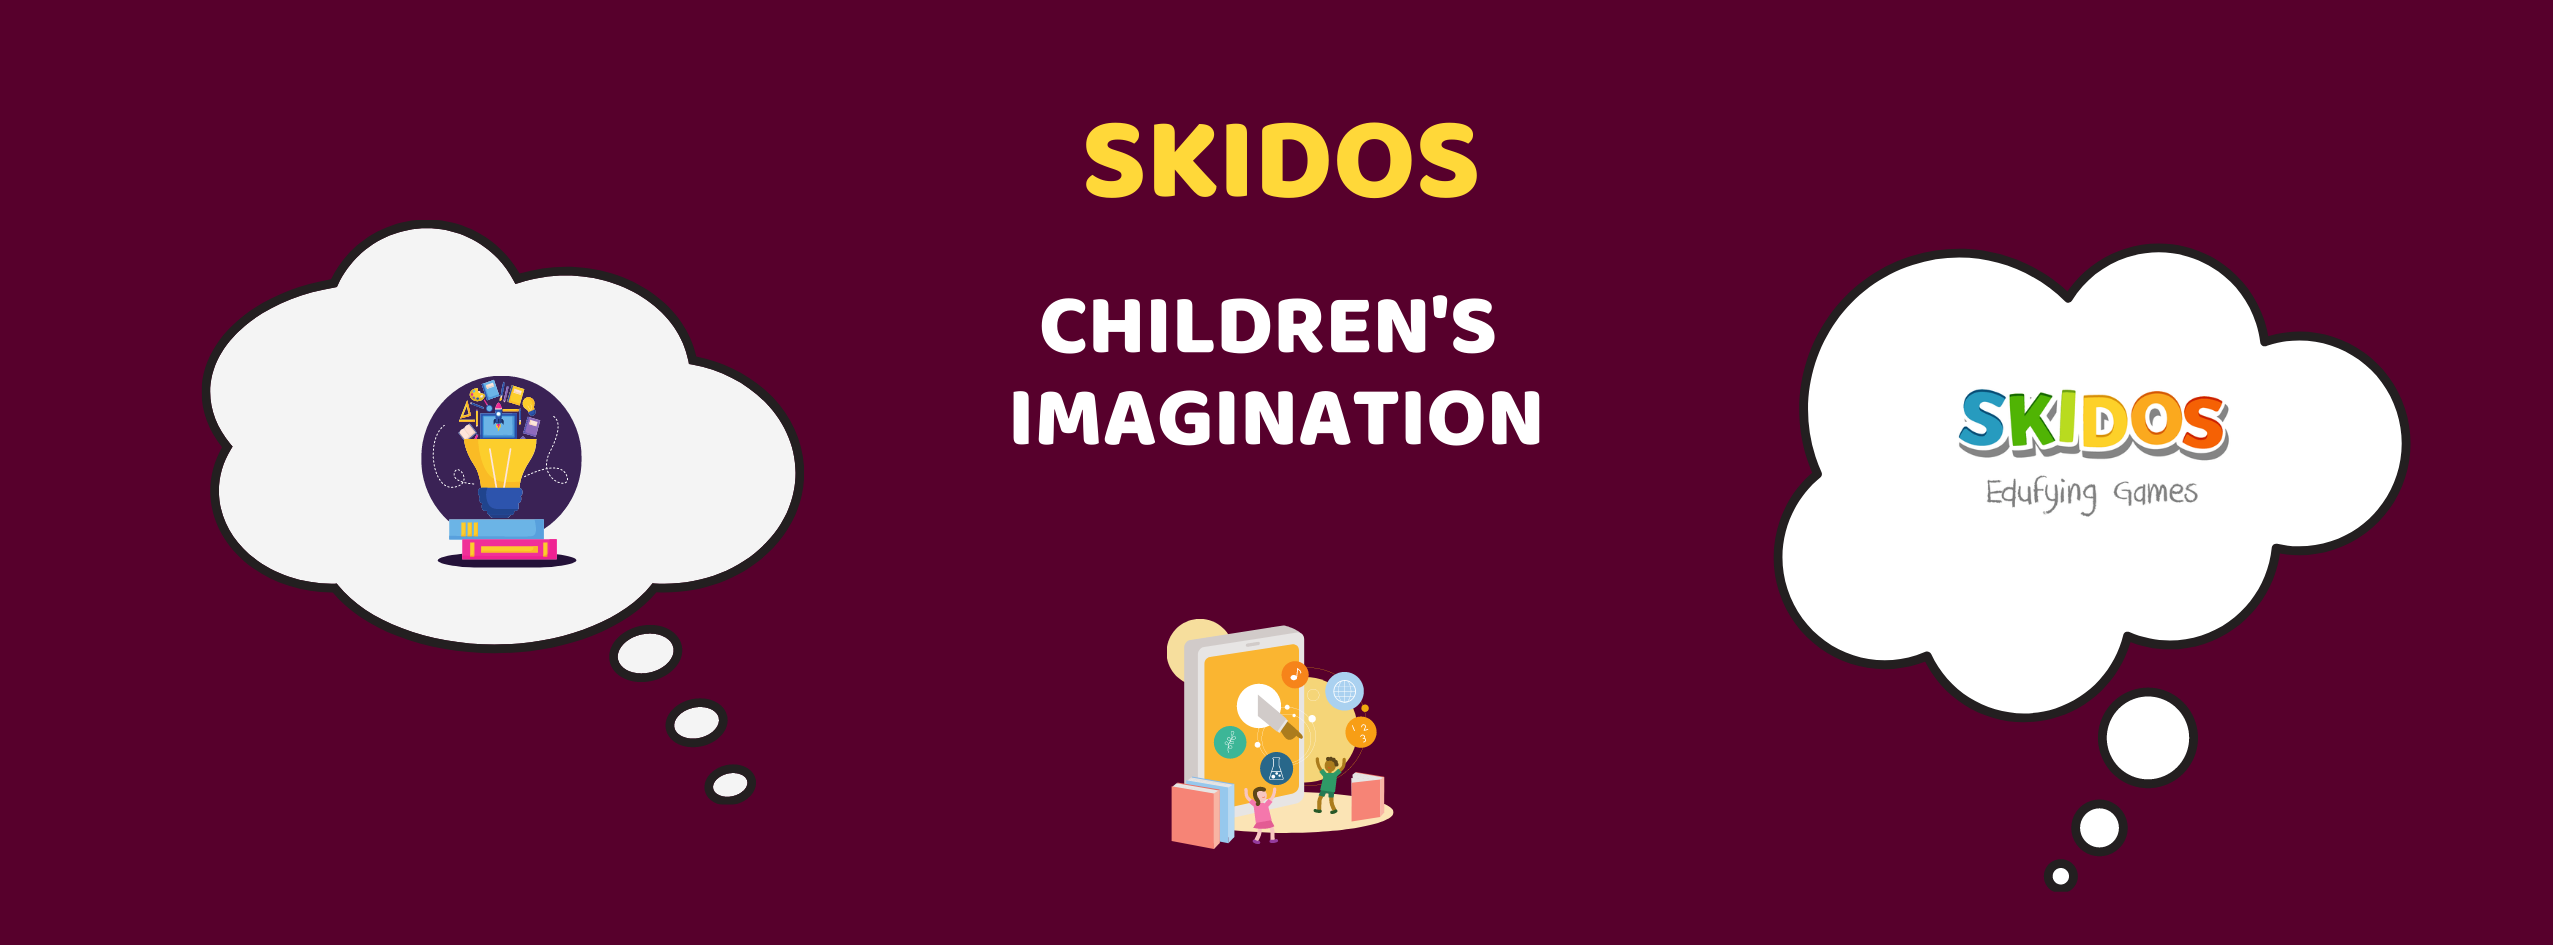 Learning games for children's imagination: Which is the best?